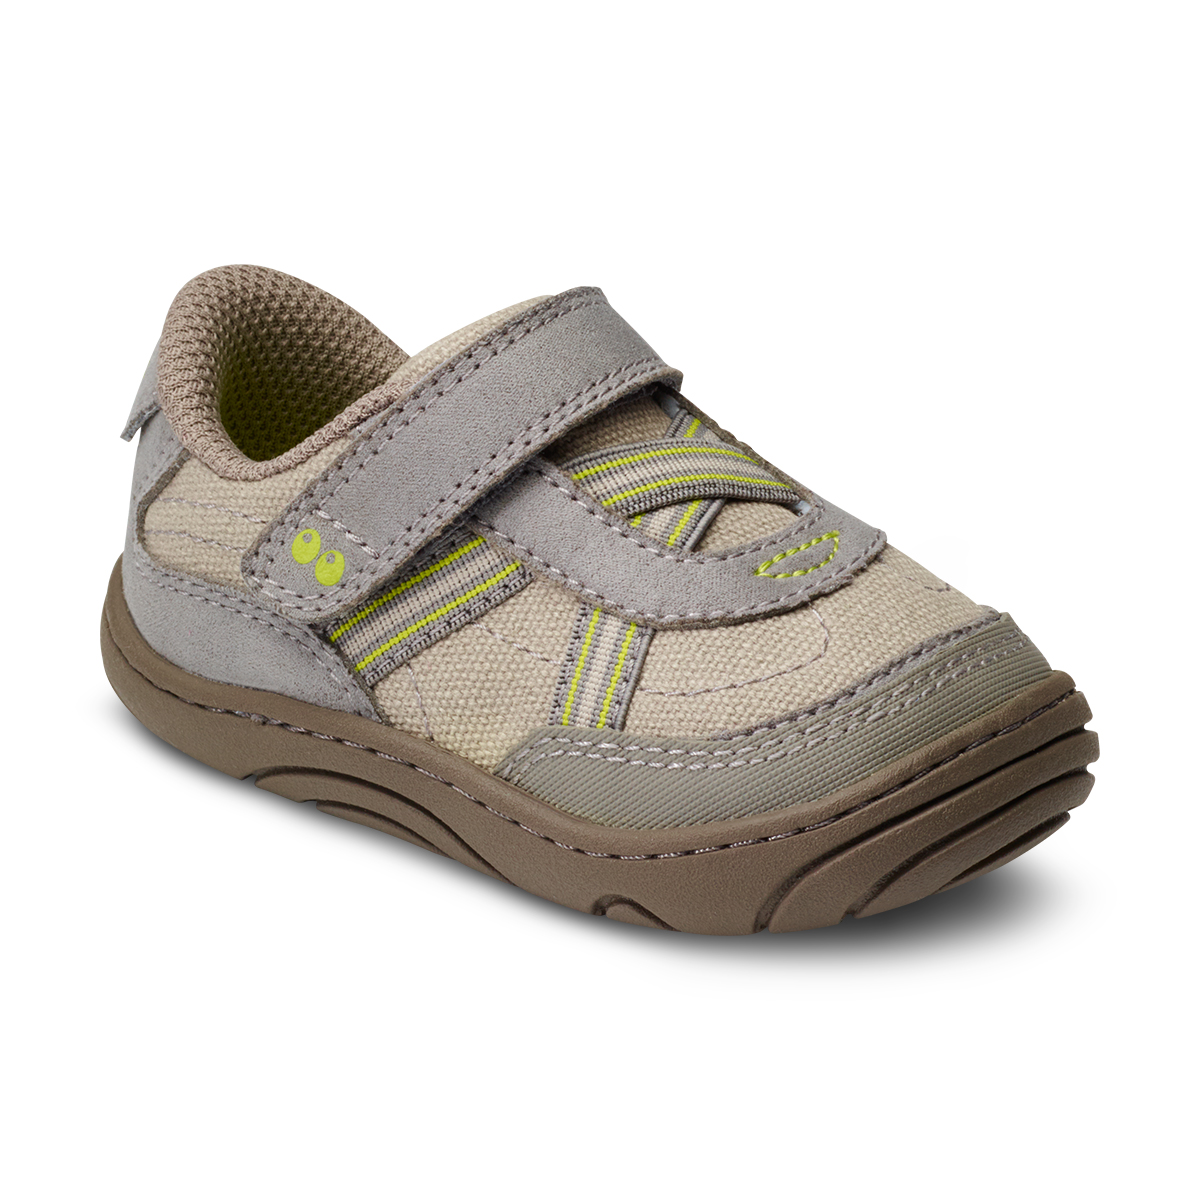 1f6c8a2877eac1 Target toddler shoes – Women shoes online